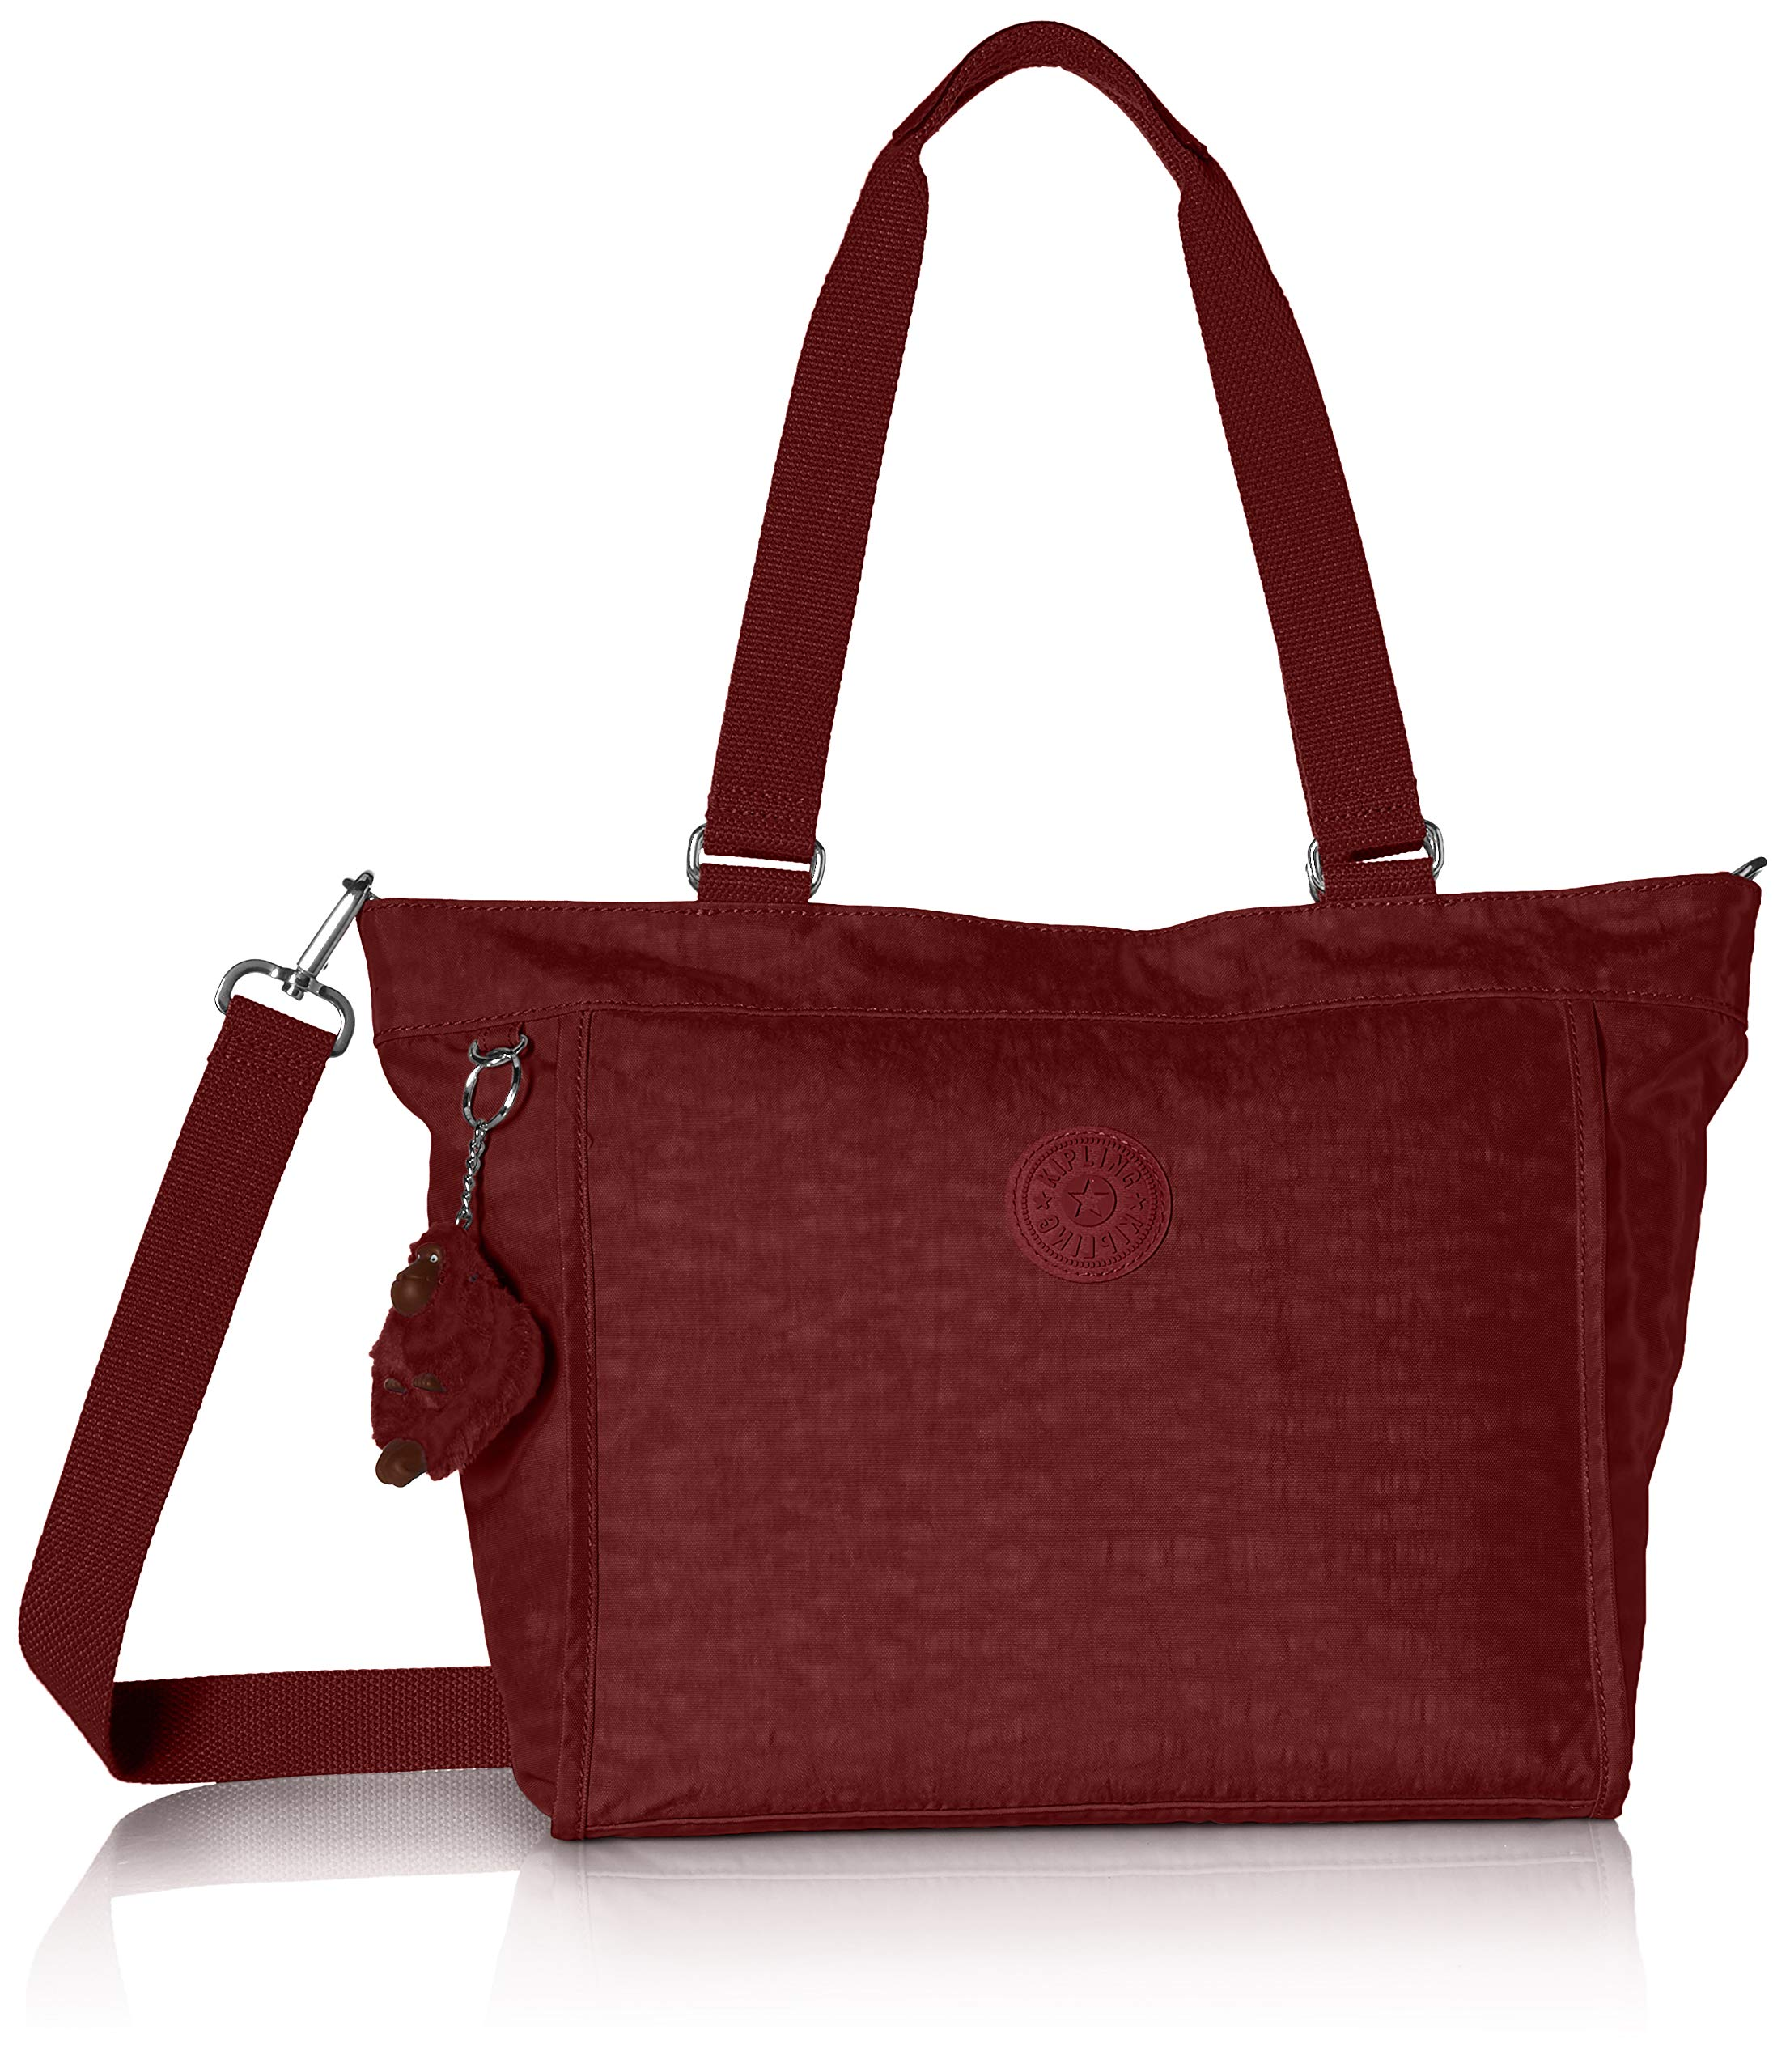 Kipling New Shopper Small Solid Tote, Brick Red